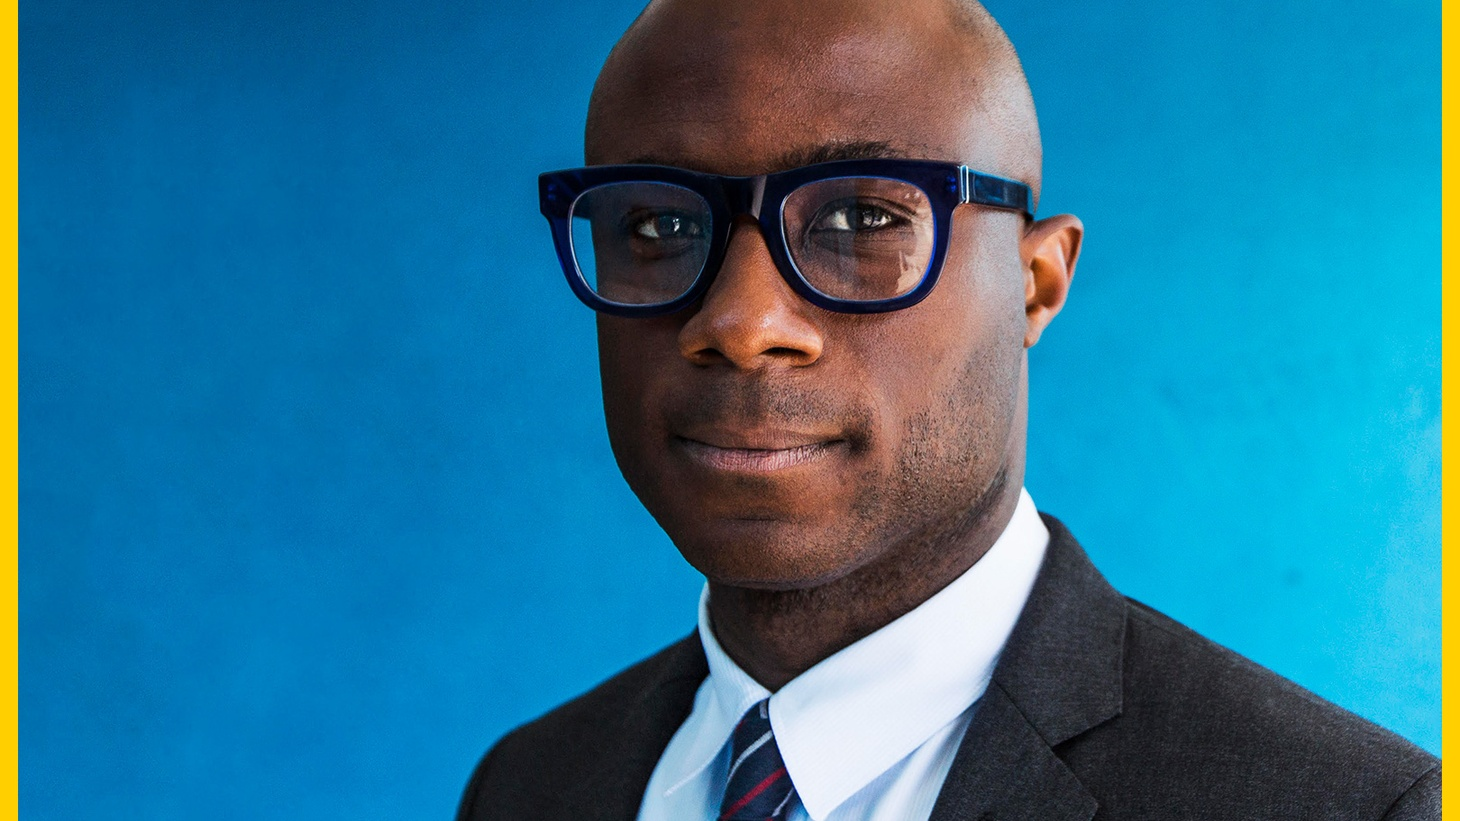 Barry Jenkins gained worldwide recognition with Moonlight, his film about the life of Chiron, a young black man in Florida struggling with his sexuality and a drug-addicted mom. Also of course, the whole Oscars catastrophe.